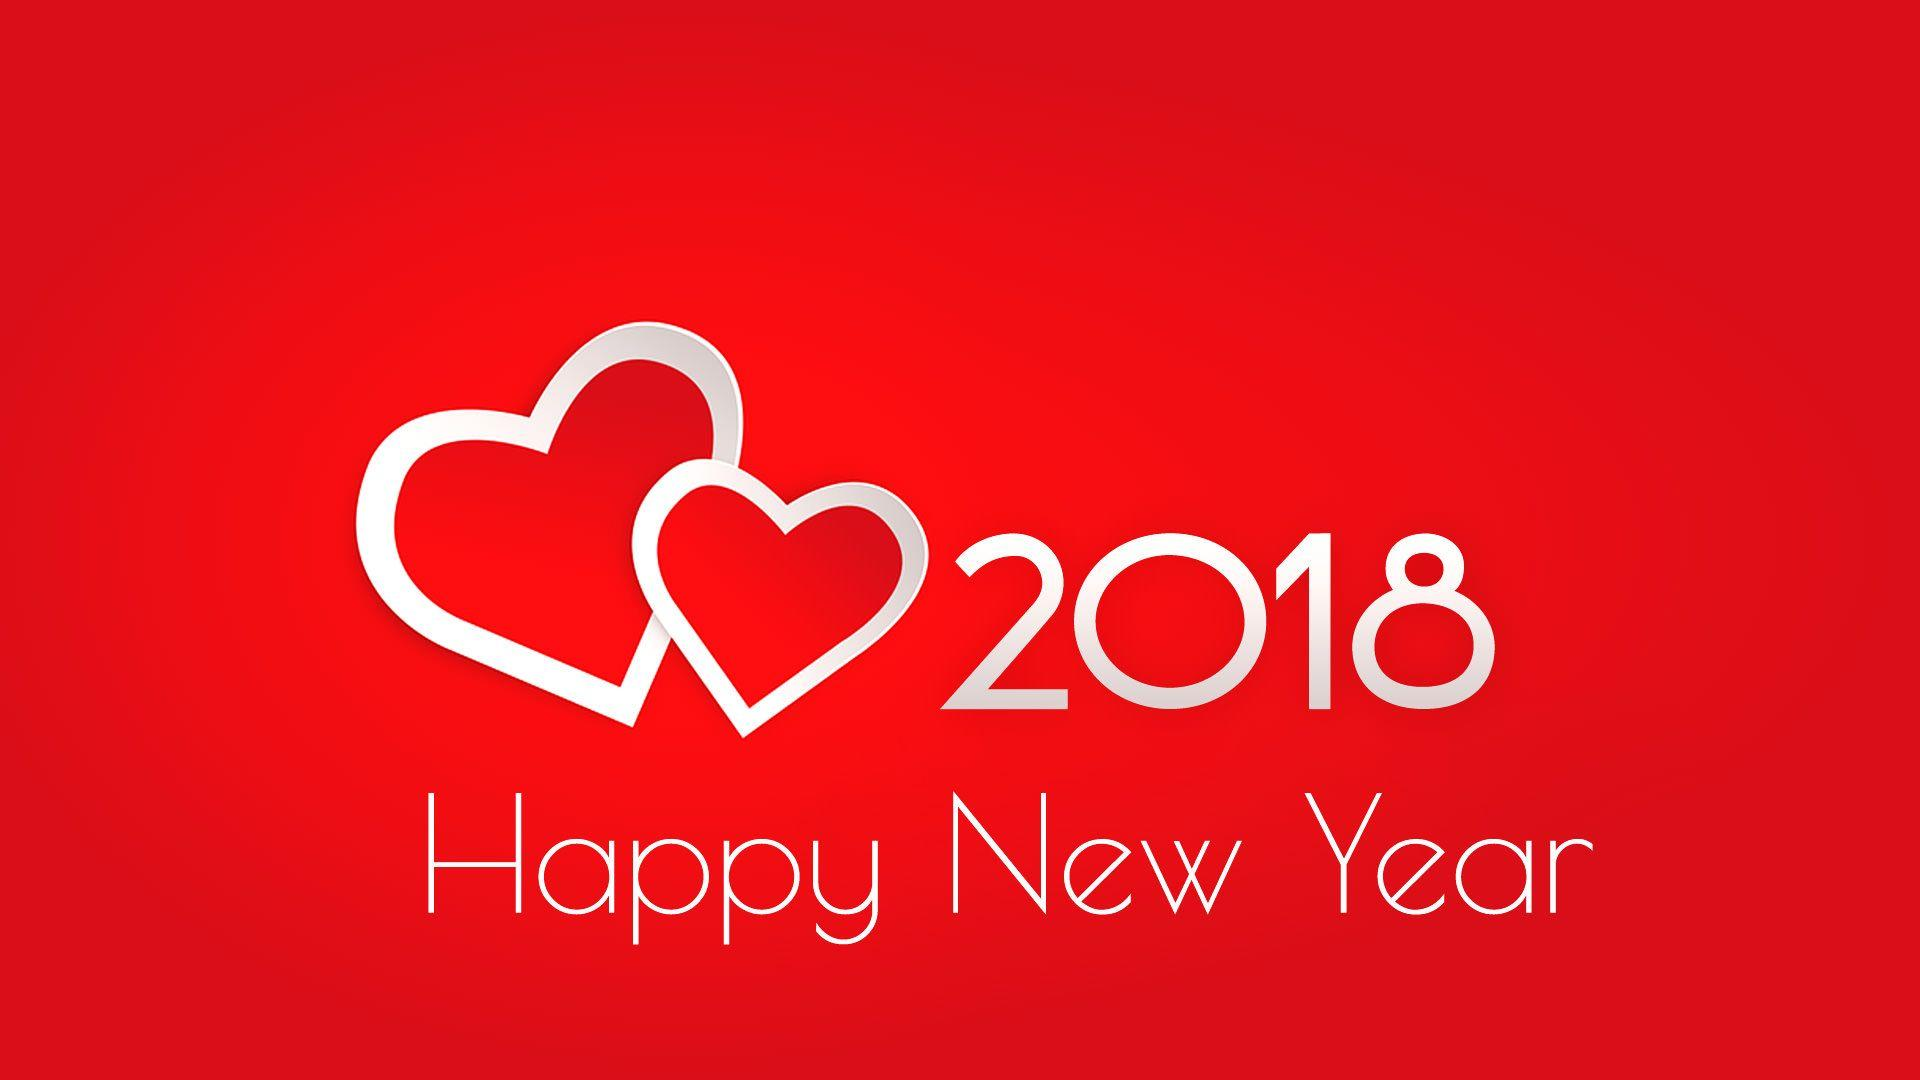 Happy New Year Love Wallpapers - Wallpaper Cave